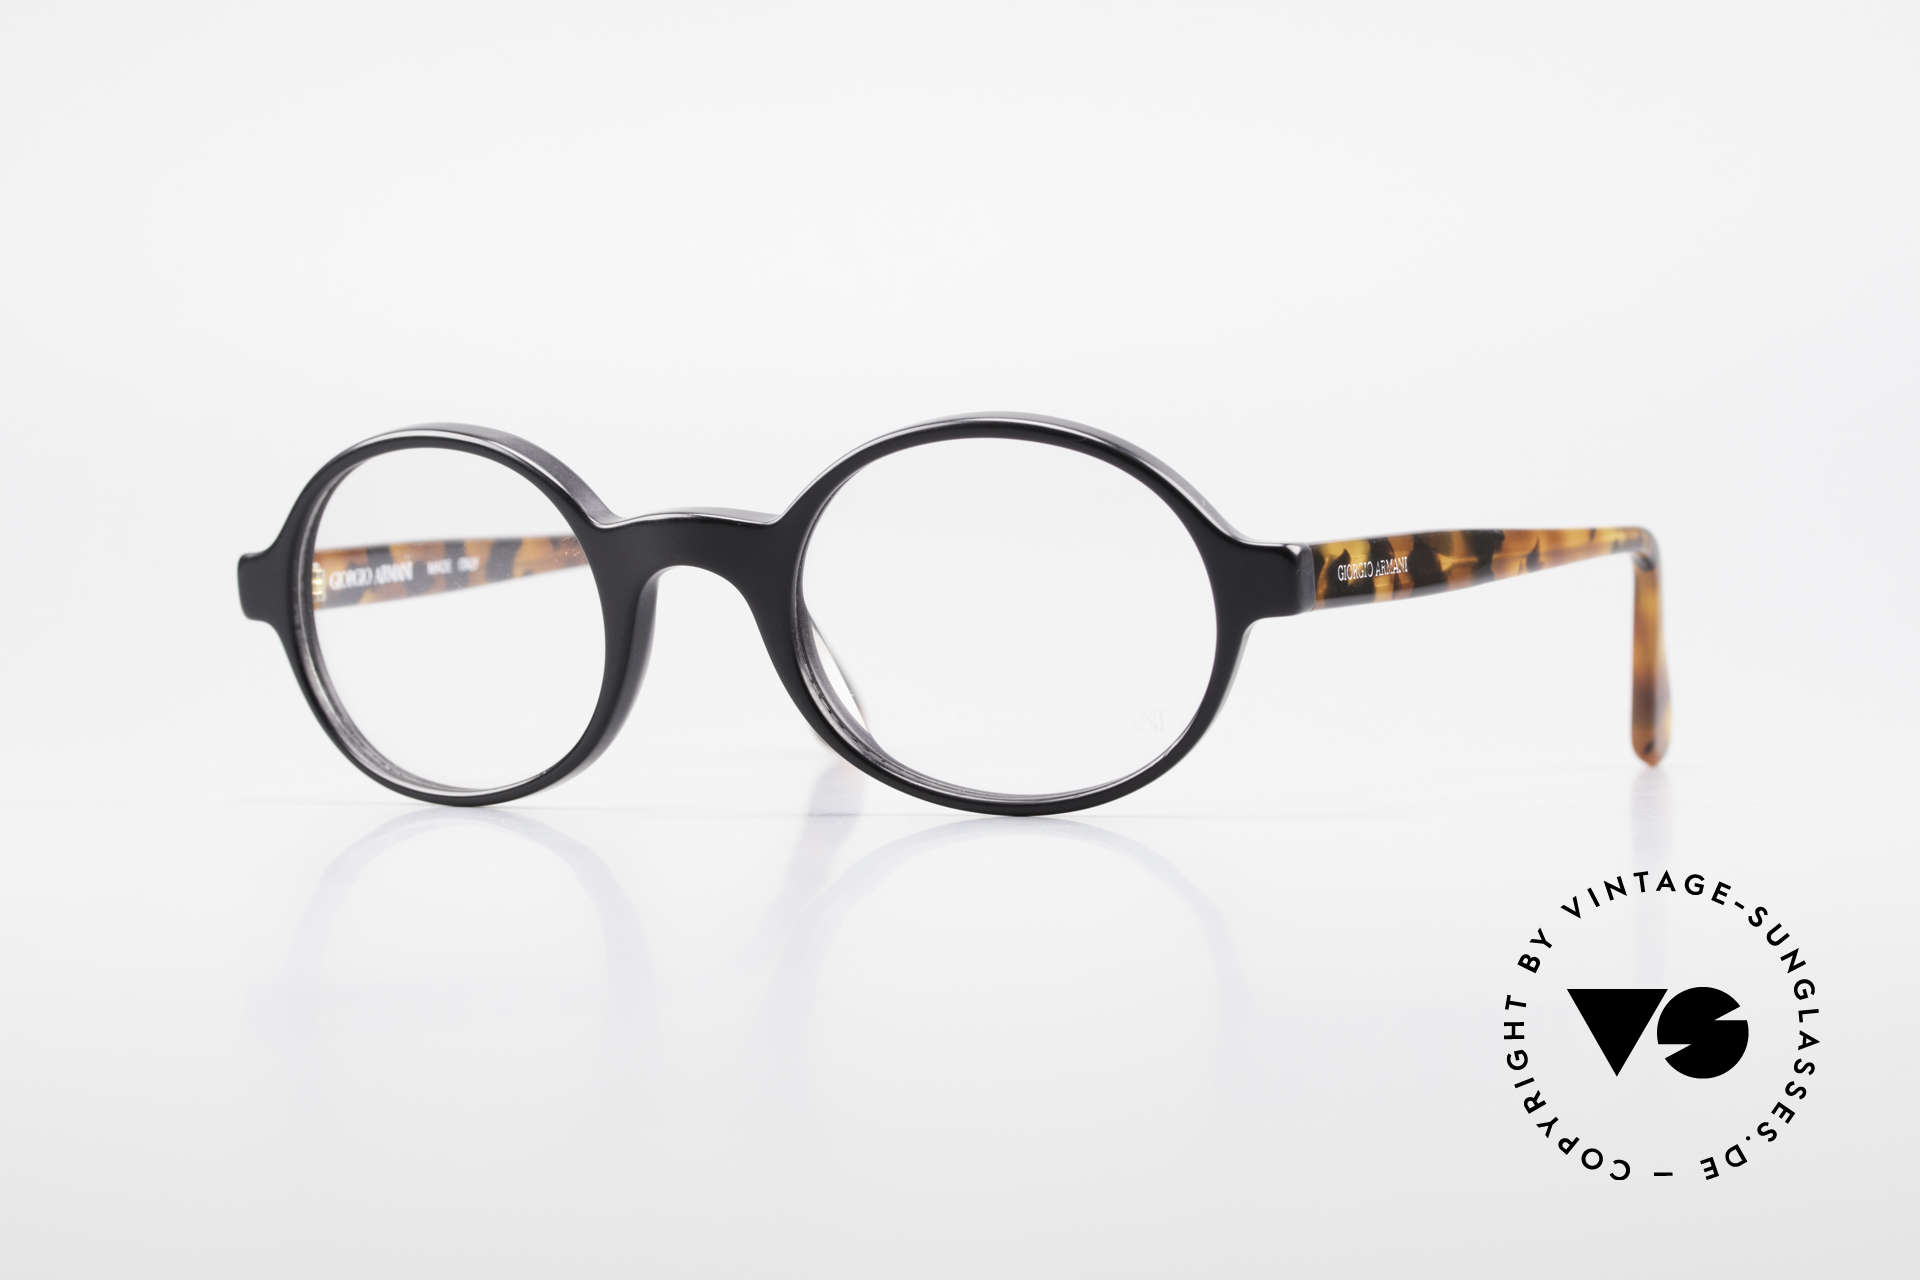 Giorgio Armani 308 Oval 80's Vintage Eyeglasses, timeless vintage Giorgio Armani designer eyeglasses, Made for Men and Women